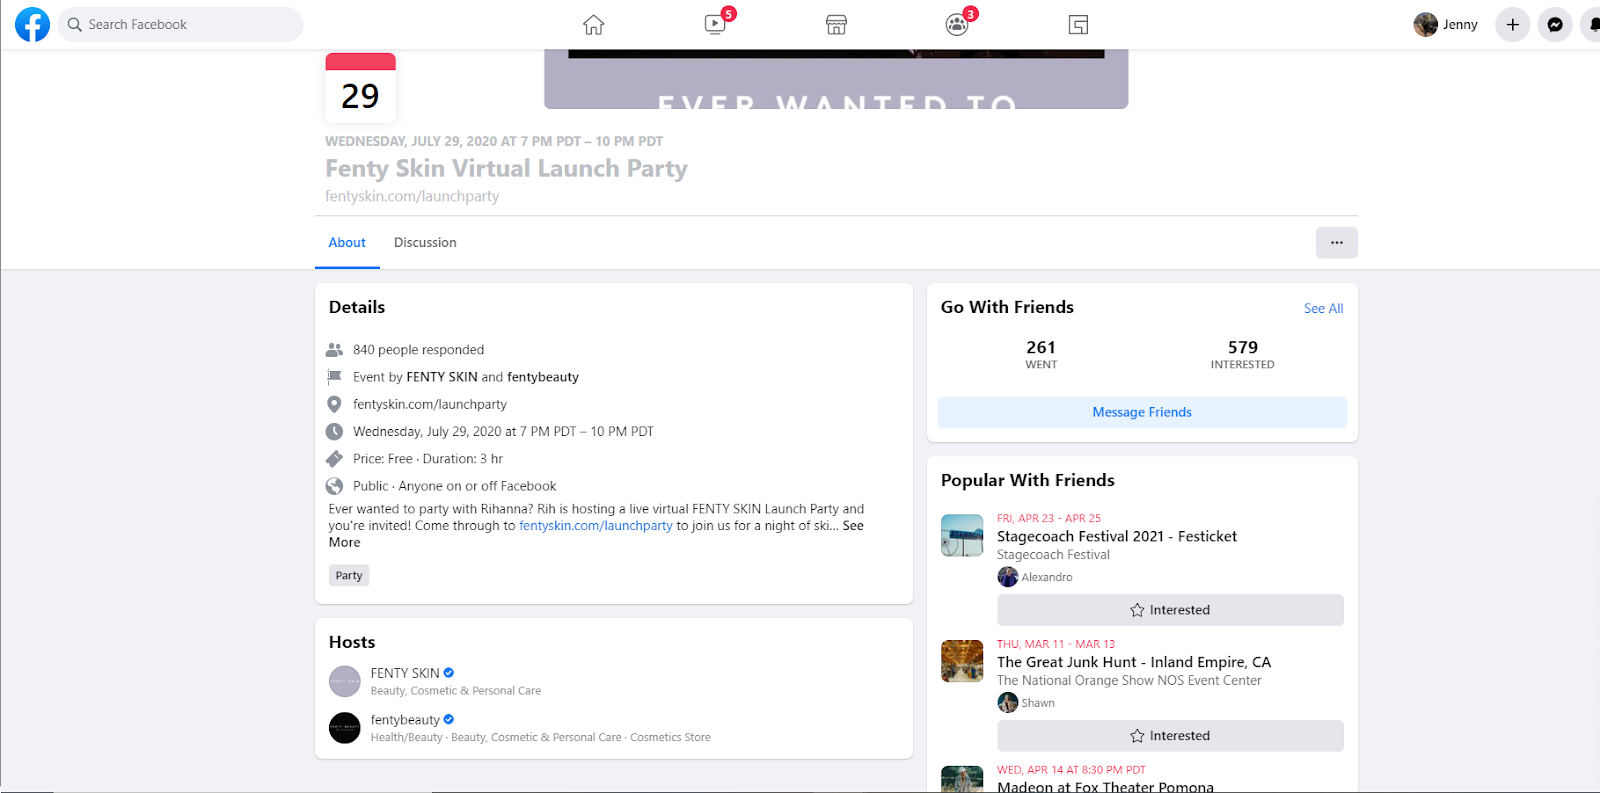 How to Promote an Event on Social Media